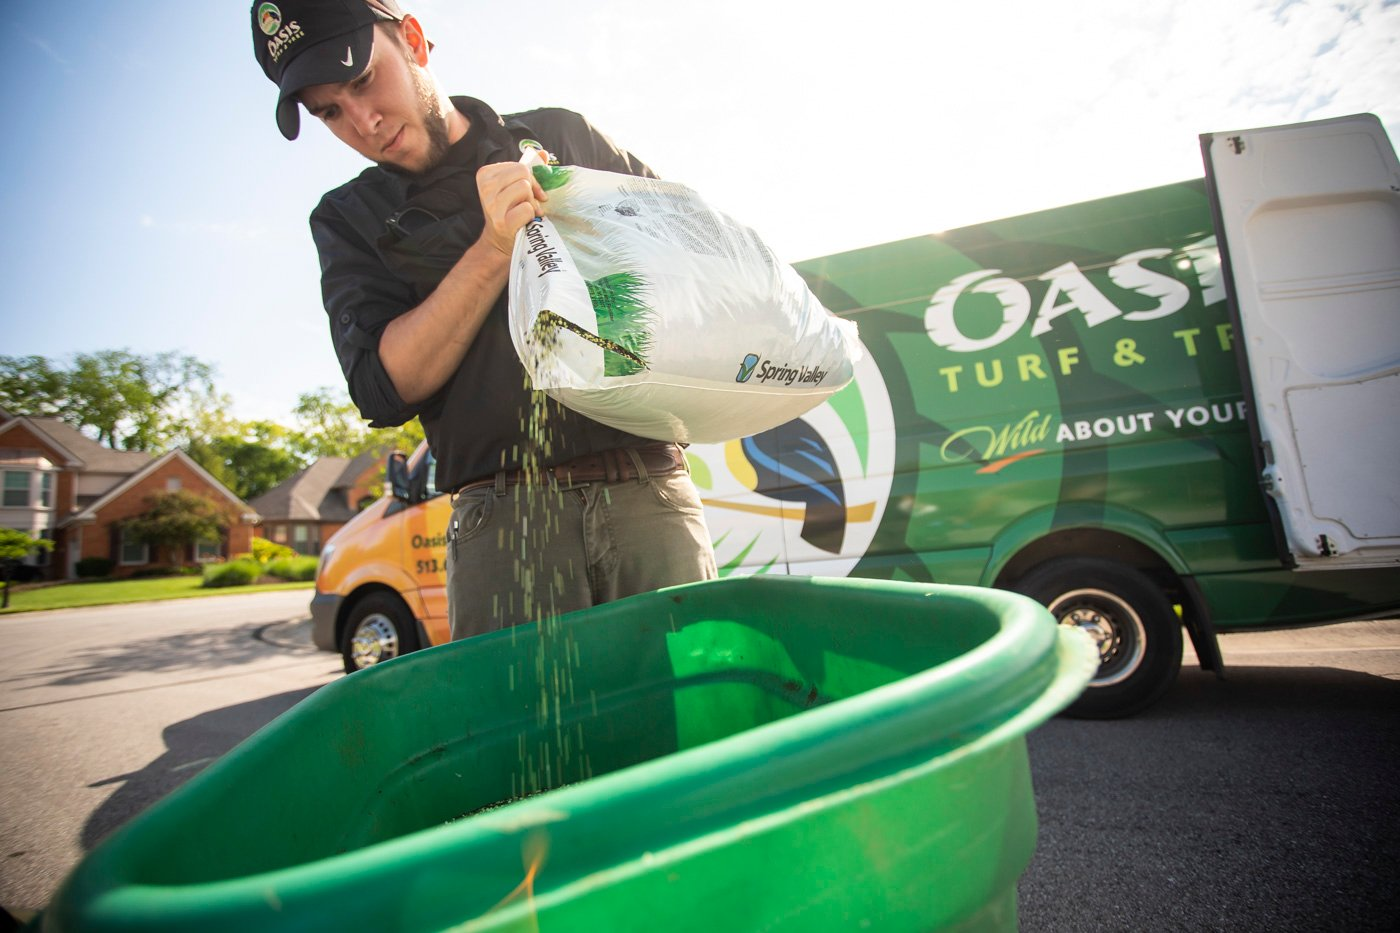 Oasis technician preparing fertilizer to be spread on a lawn